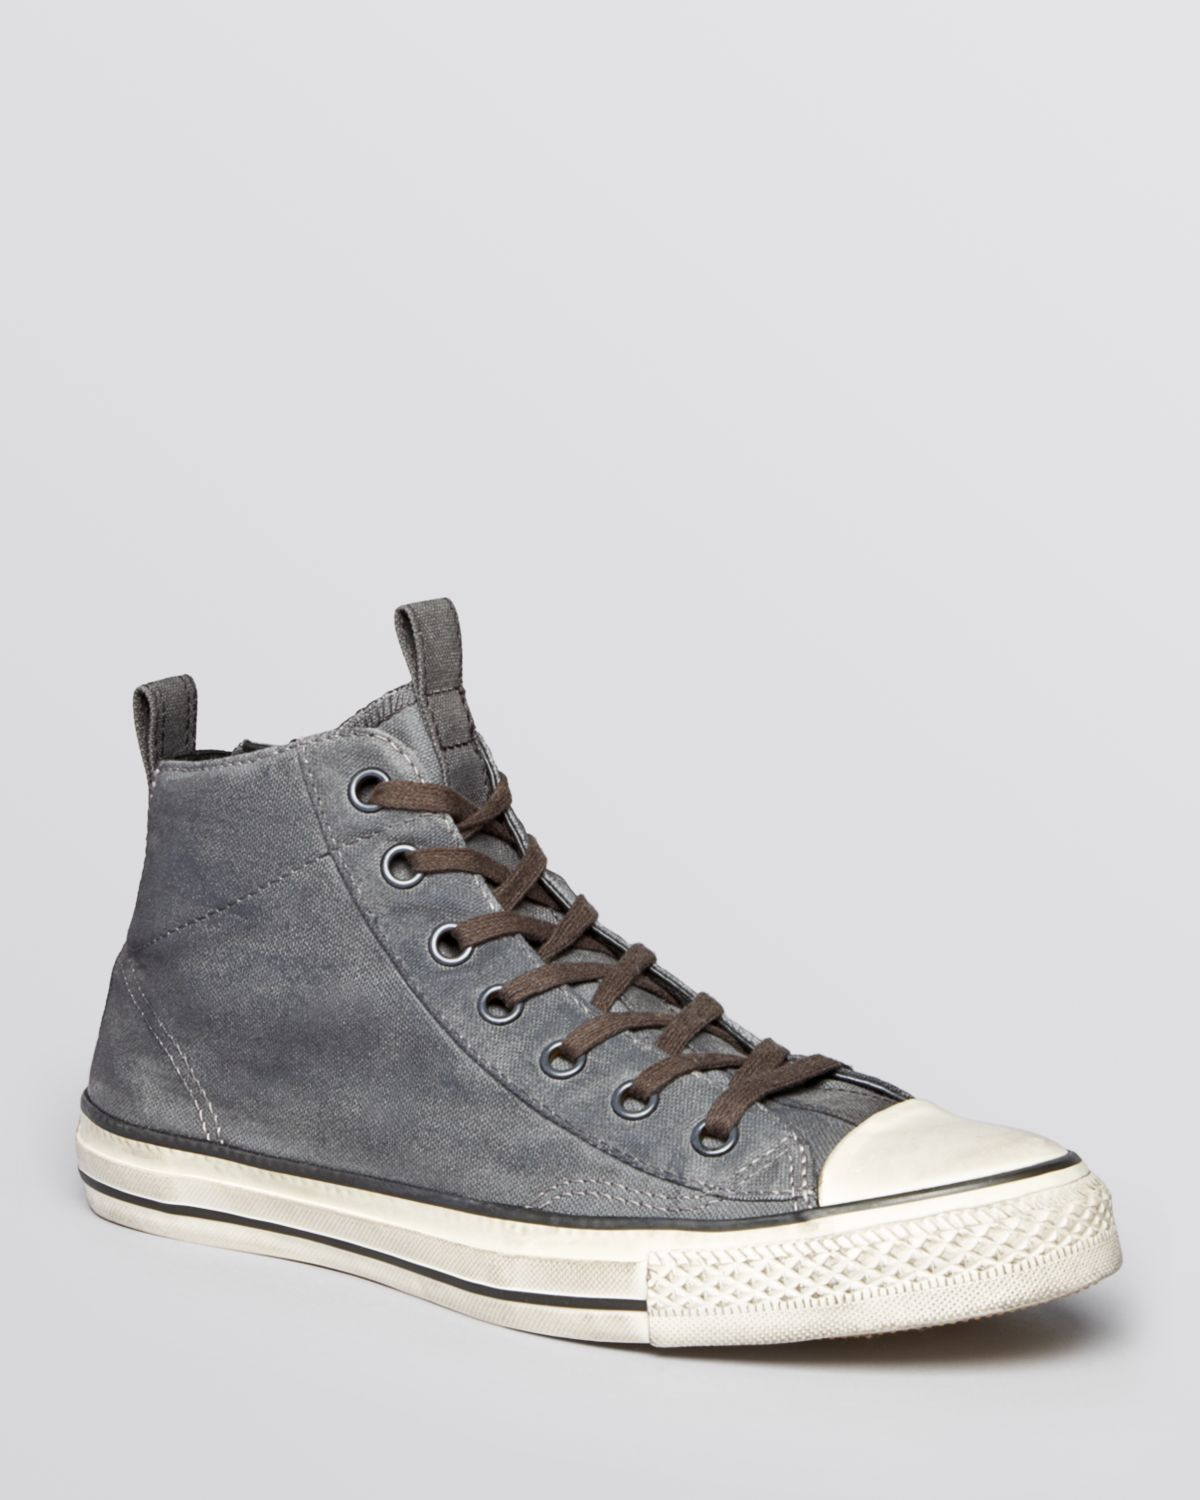 3a50b72f19766f Gallery. Previously sold at  Bloomingdale s · Men s John Varvatos Converse  ...